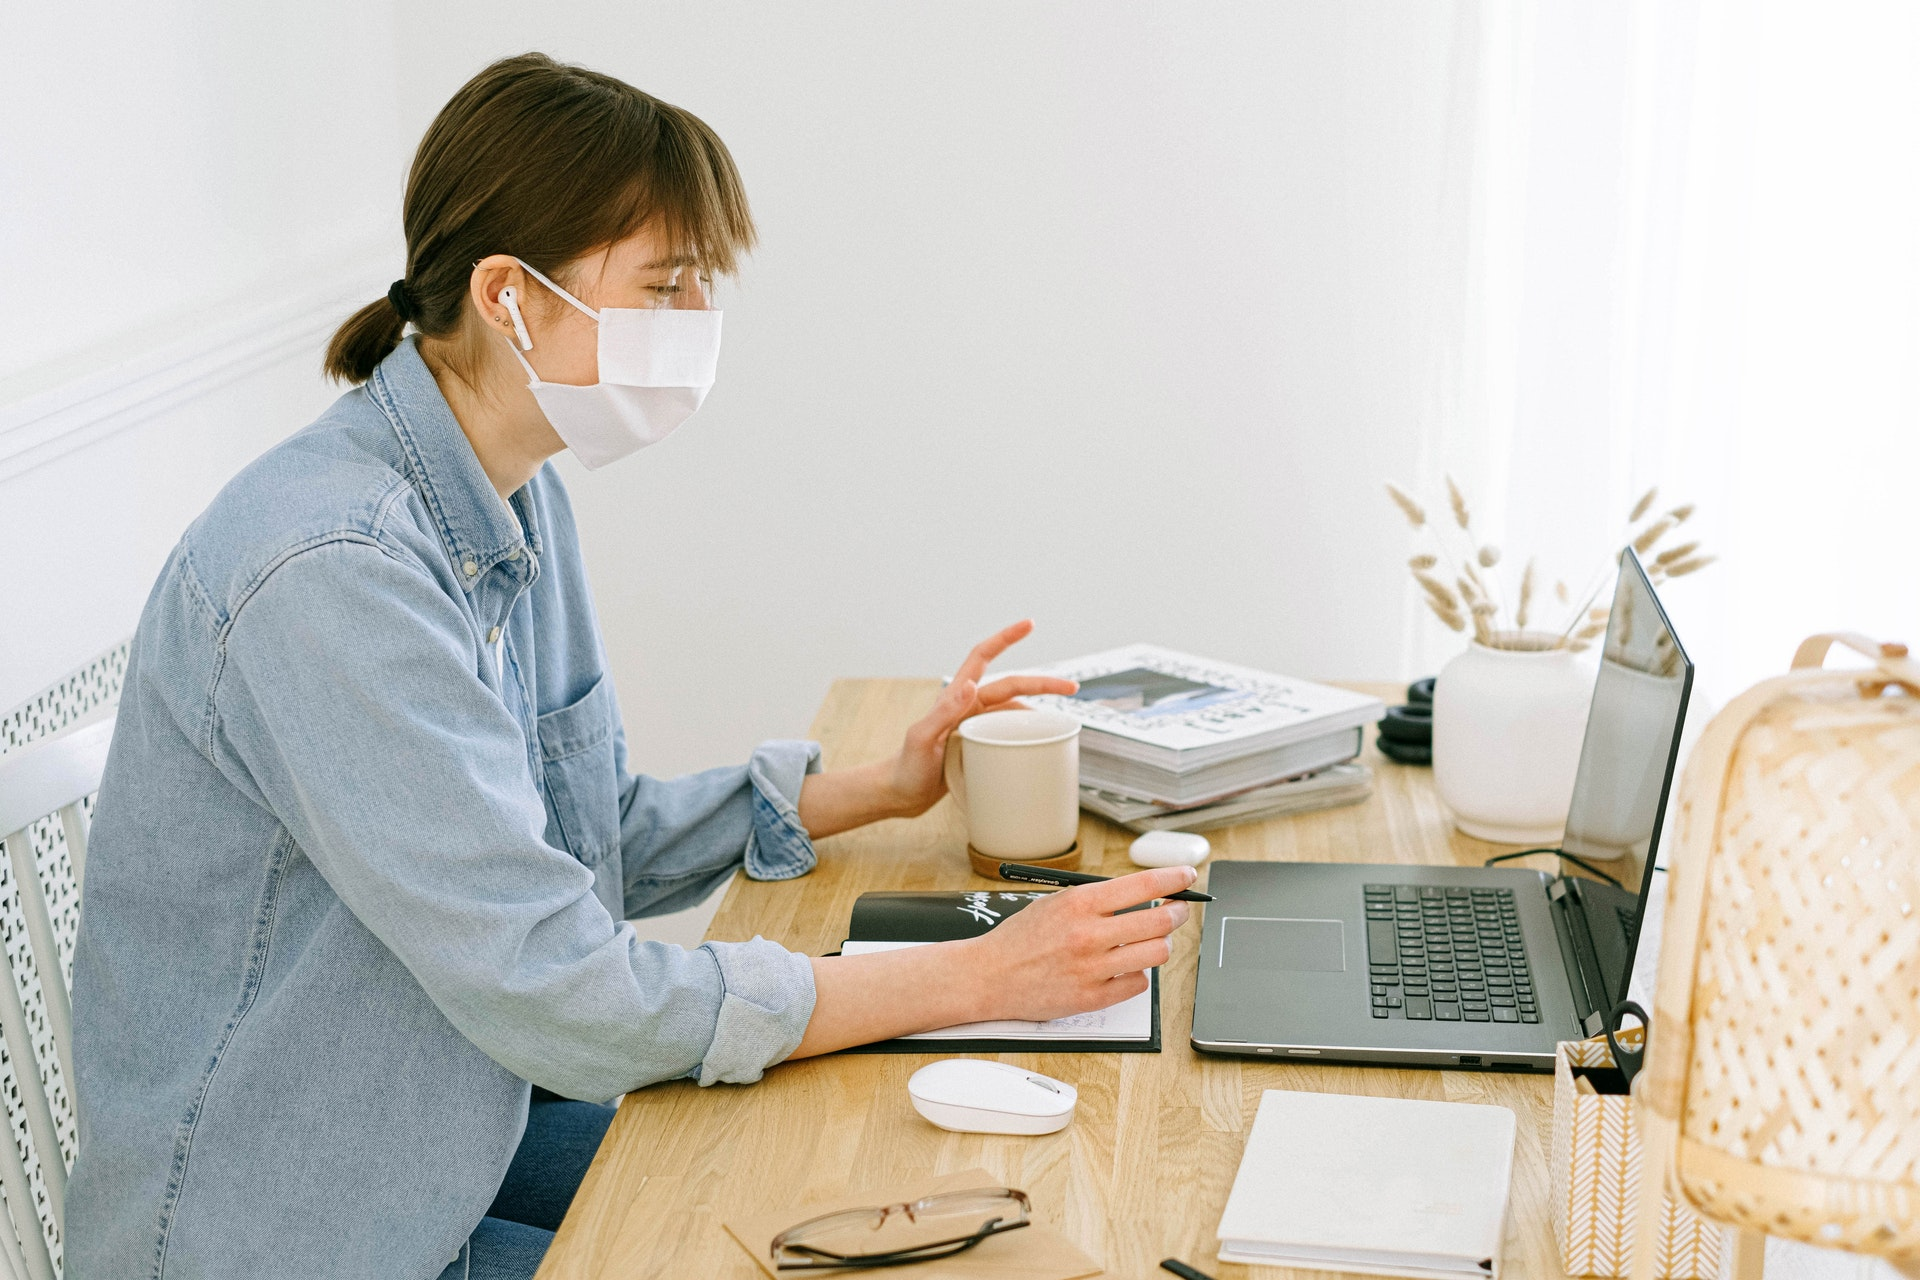 Woman using a laptop at a desk while wearing a white face mask